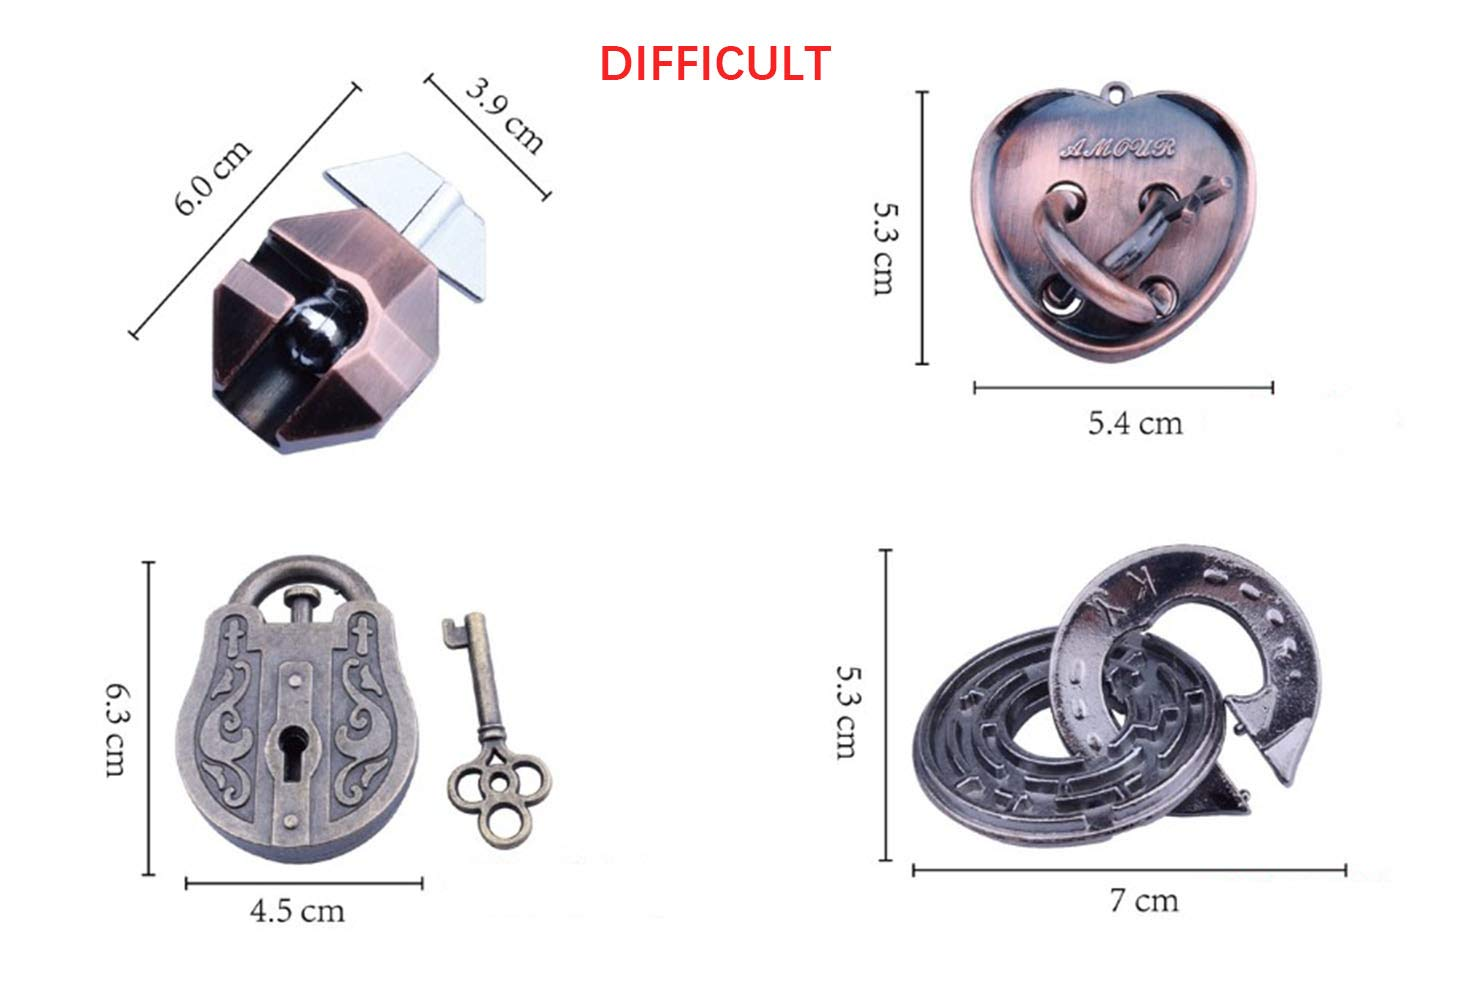 Metal hole lock adult childrens educational toys Luban lock Metal Puzzles Brain Teaser Set IQ Disentanglement Toy Pack Magic Trick Game Lock Iron Wire Link Unlock Ring Gift Bundle Educational for Kids Adult Challenge L